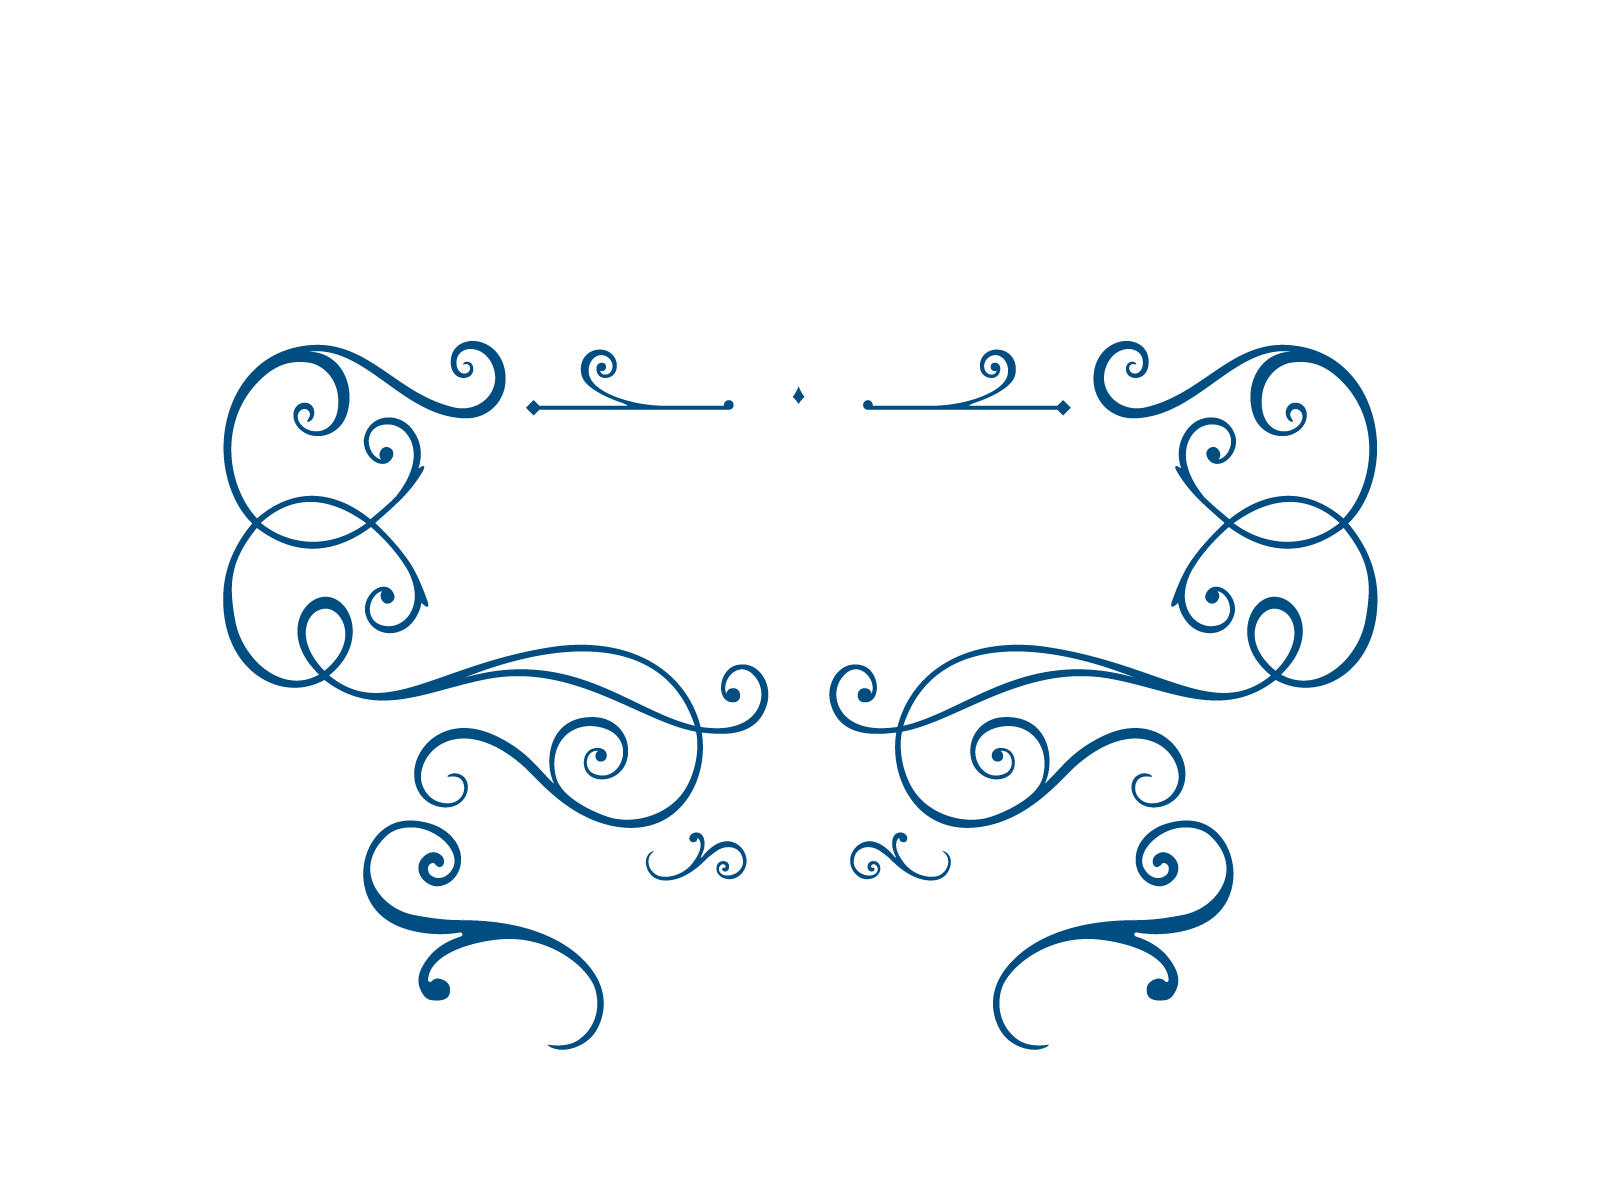 three amigos cantina hosted by cte global